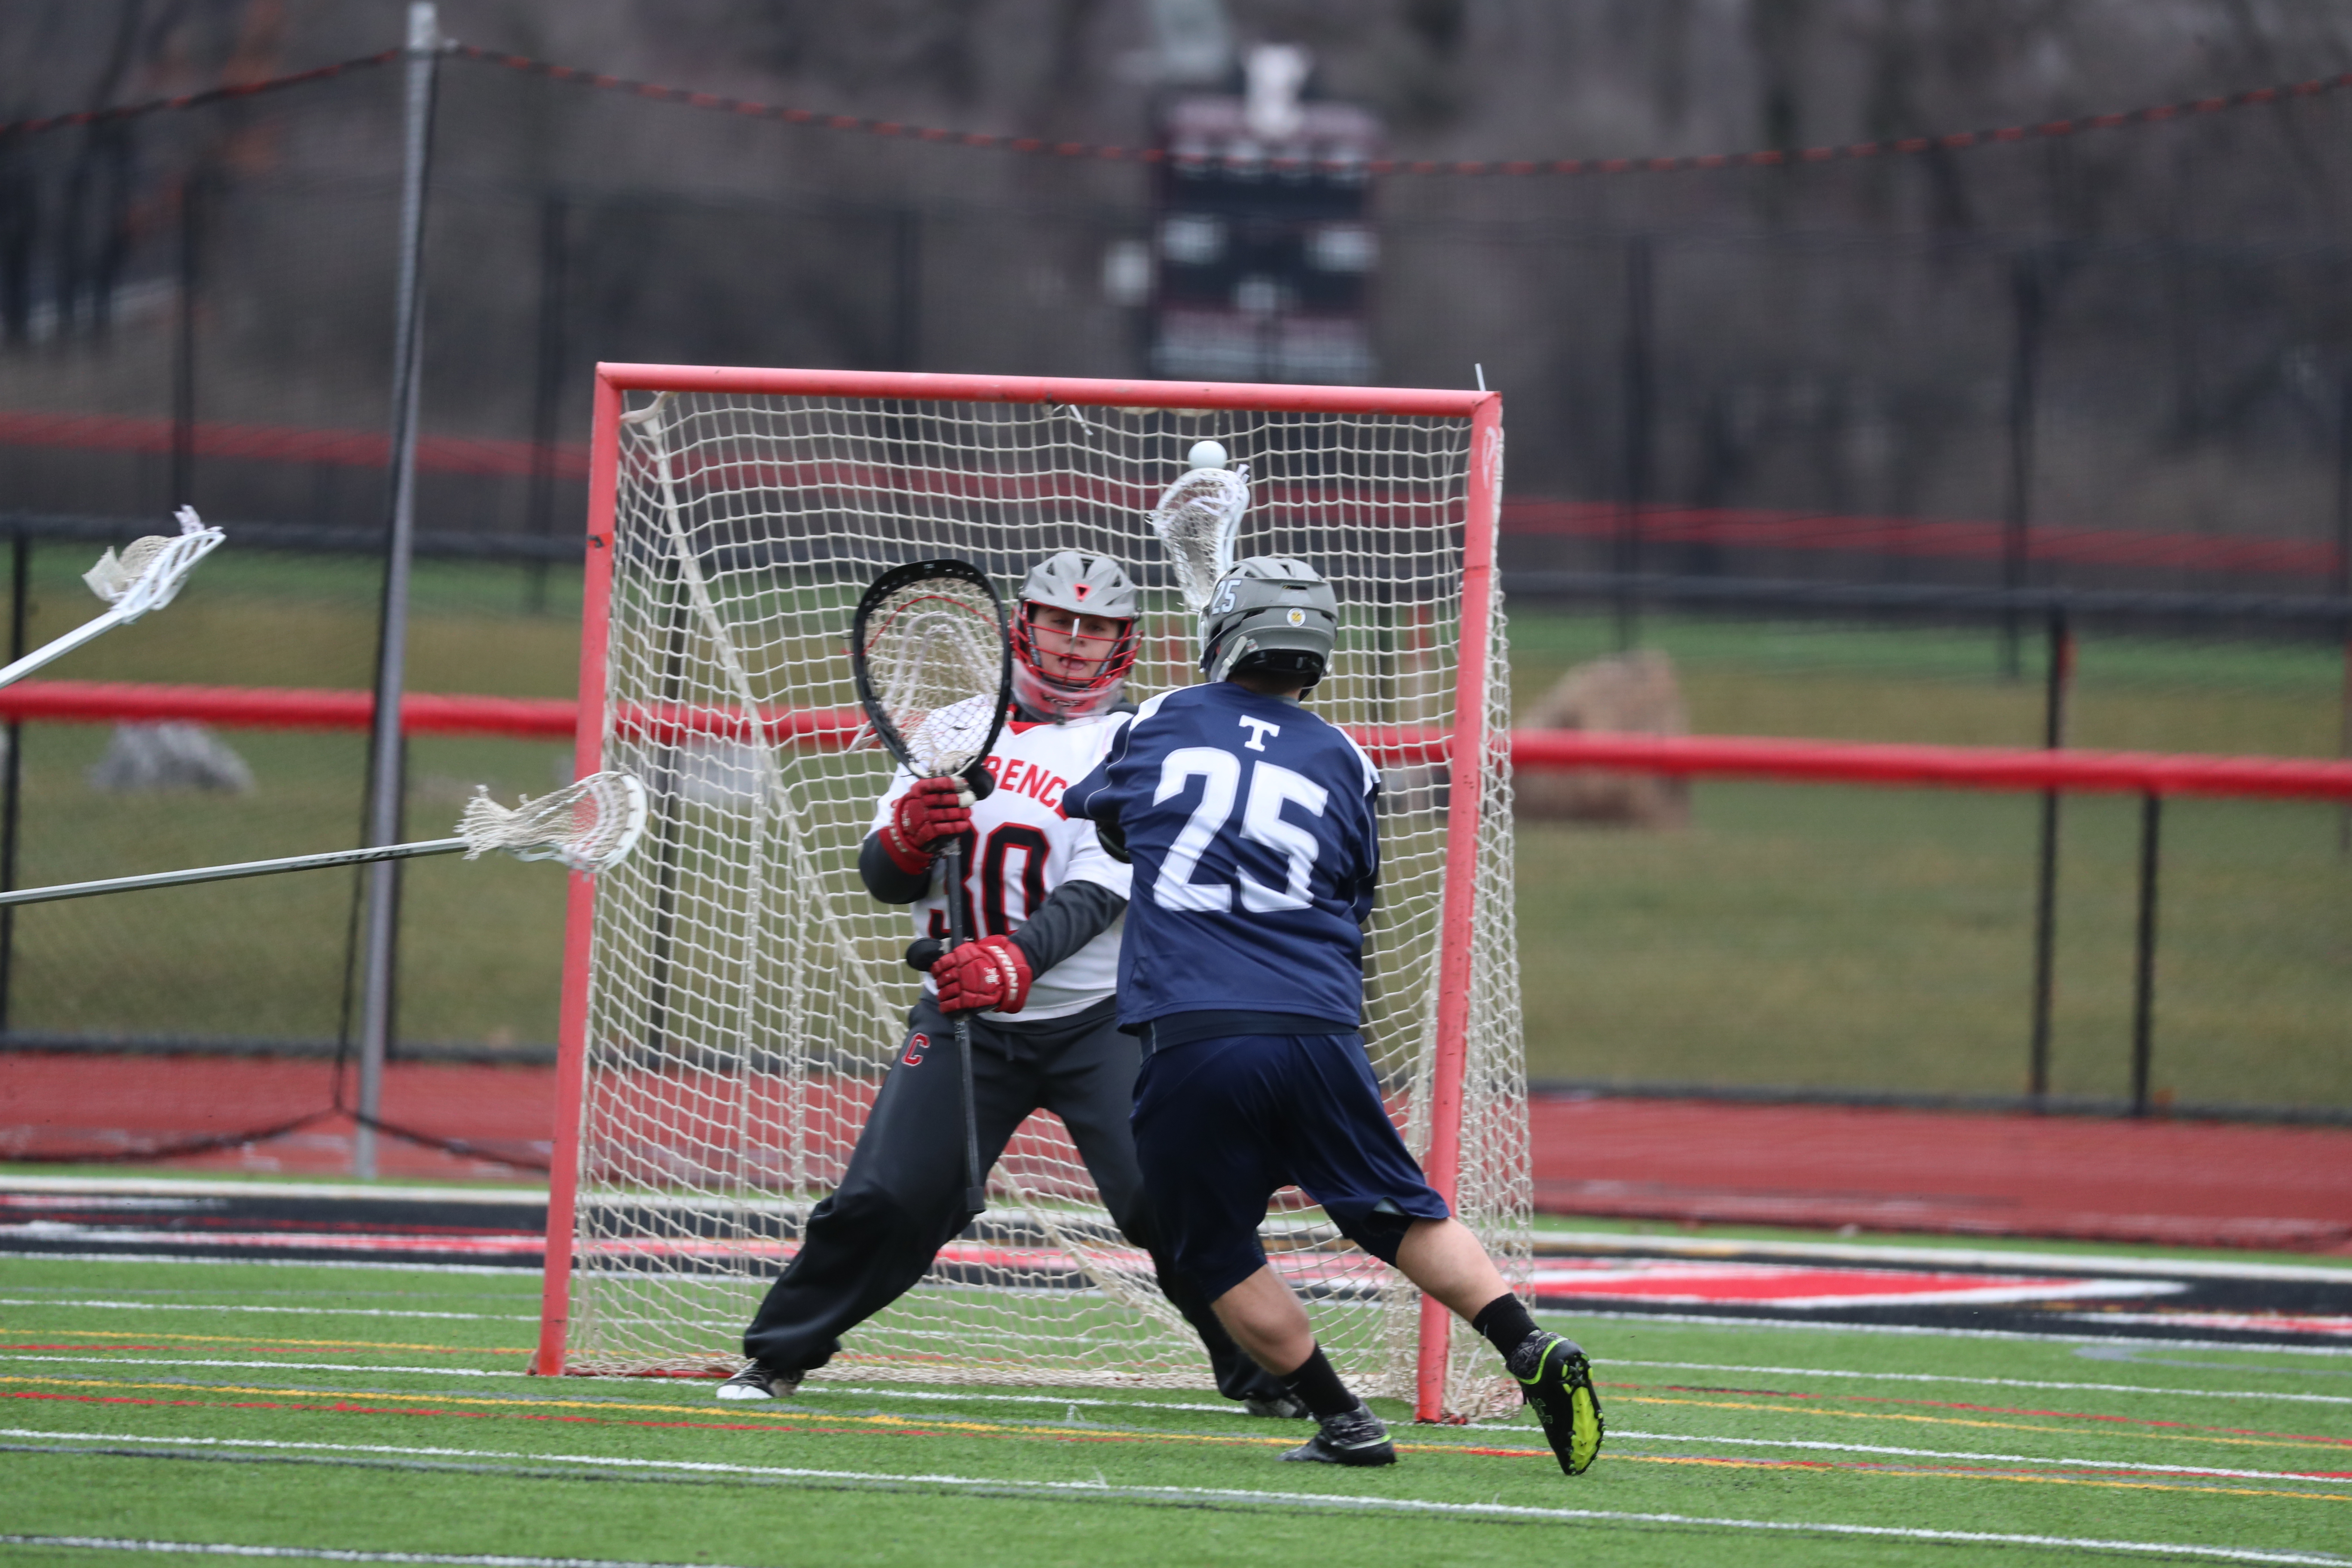 Clarence's Andy Avarello can't stop the shot by Webster Thomas'  Trevor Ford during Saturday's game at Clarence. (James P. McCoy/Buffalo News)